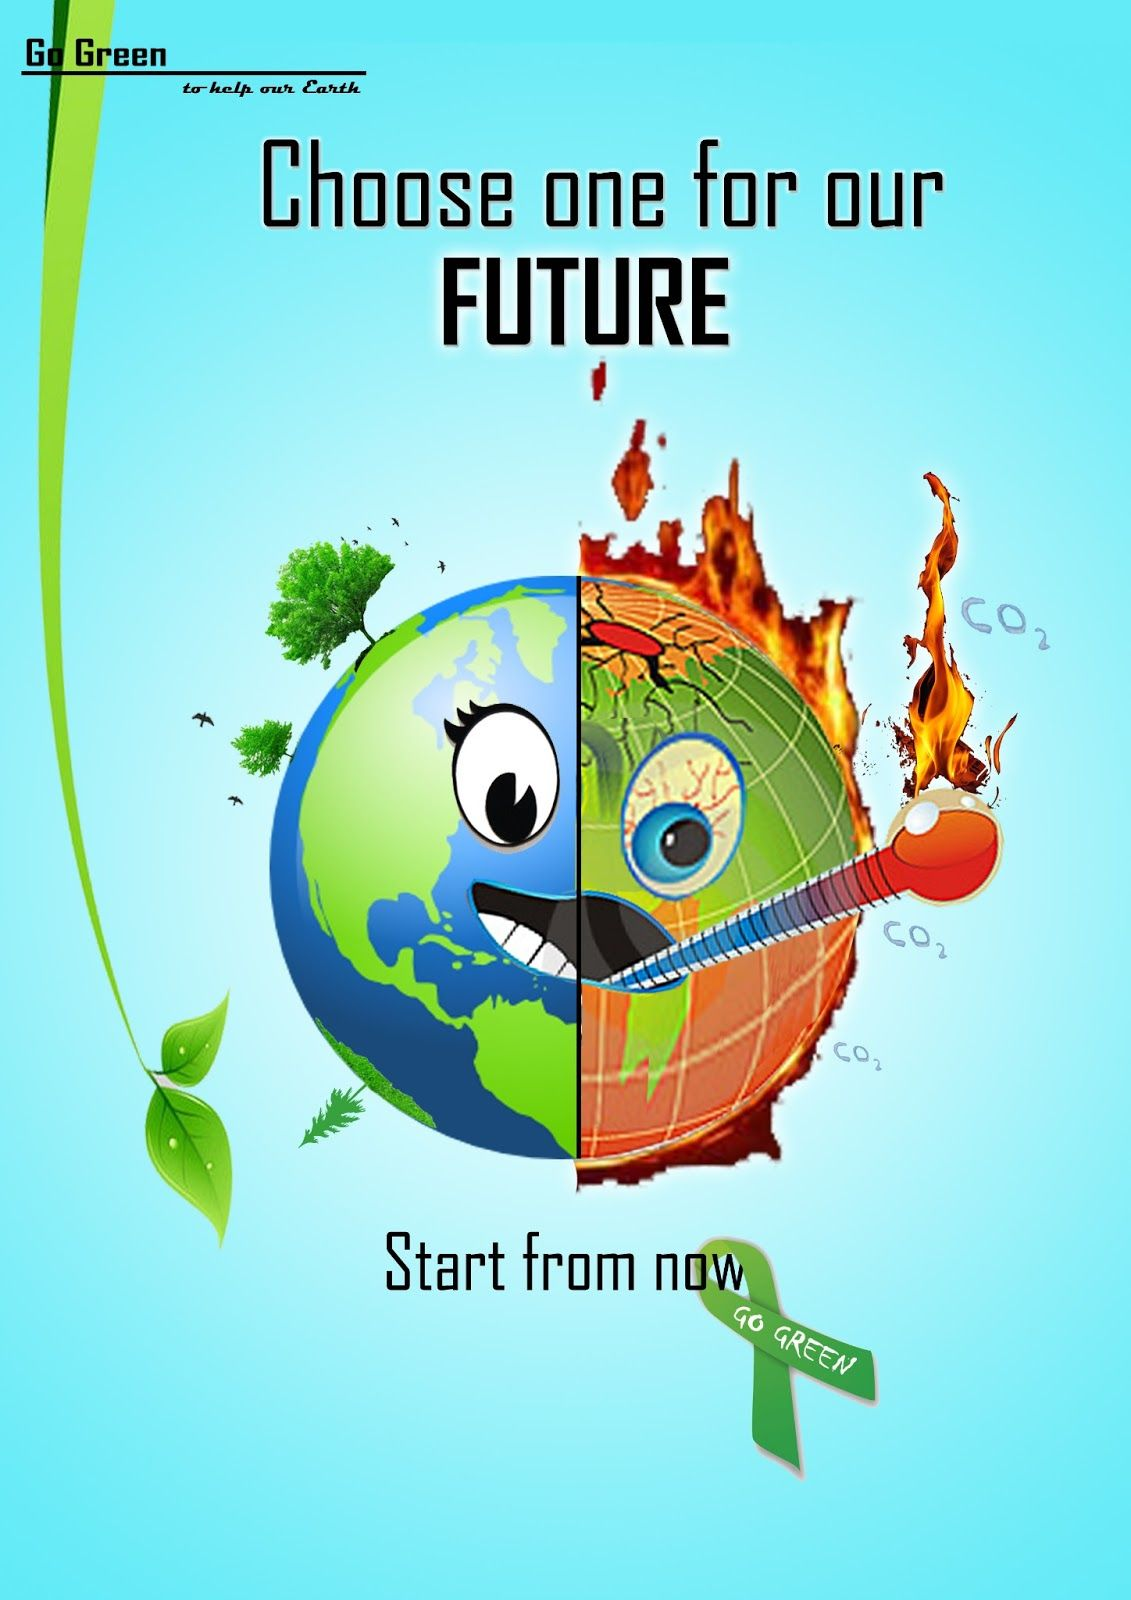 go green poster ideas for nift nid ceed design entrance exam